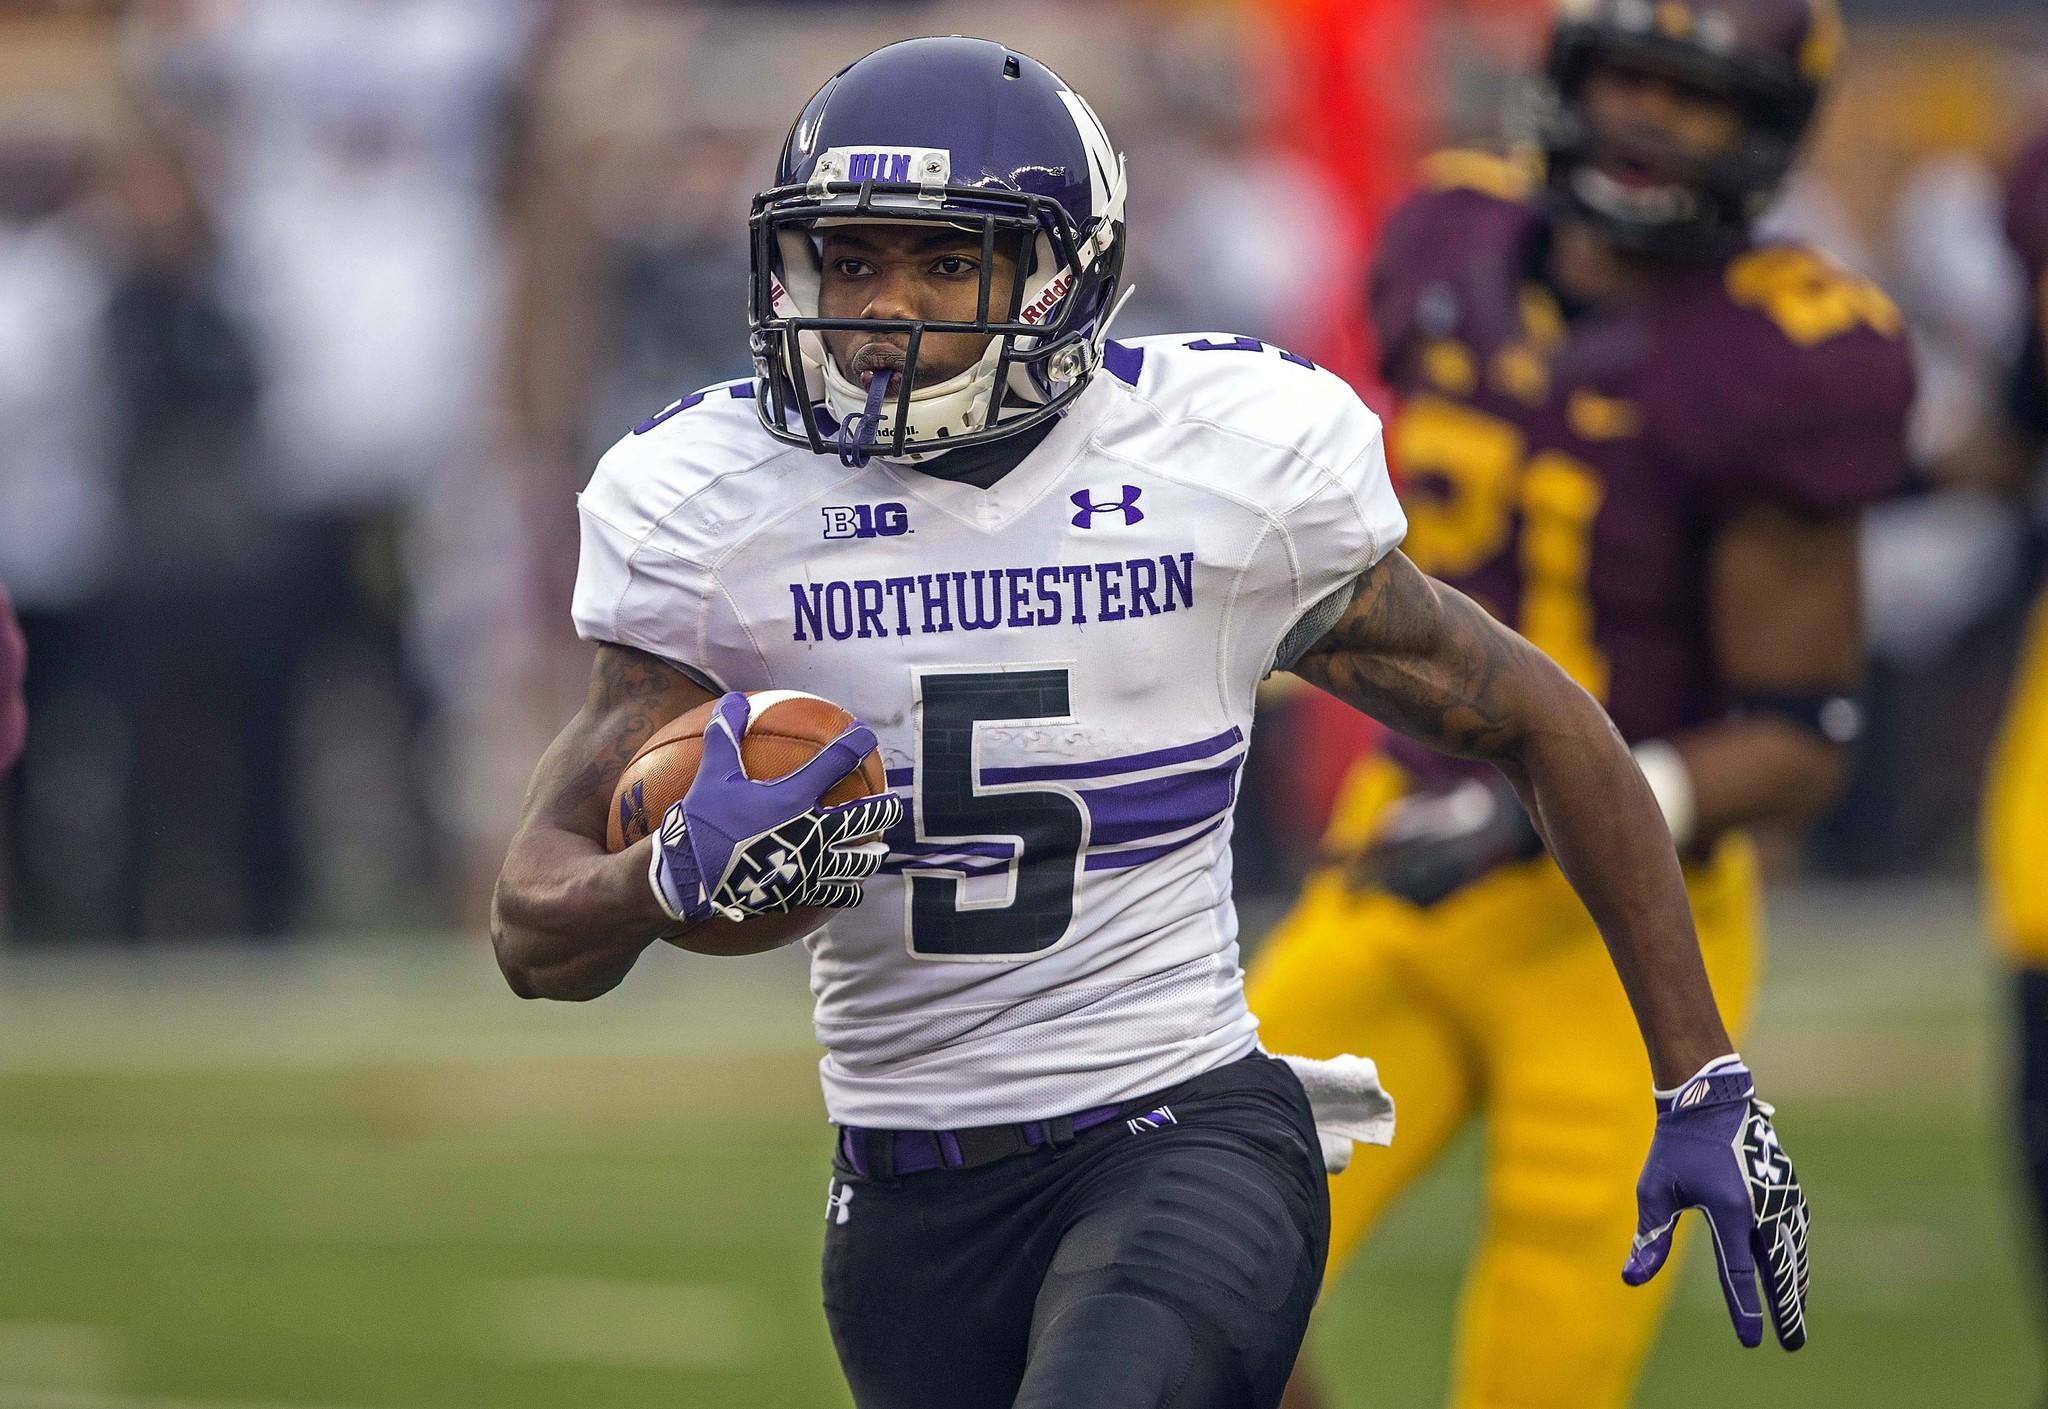 Northwestern running back Venric Mark scores on a 26-yard touchdown in the first quarter against Minnesota.